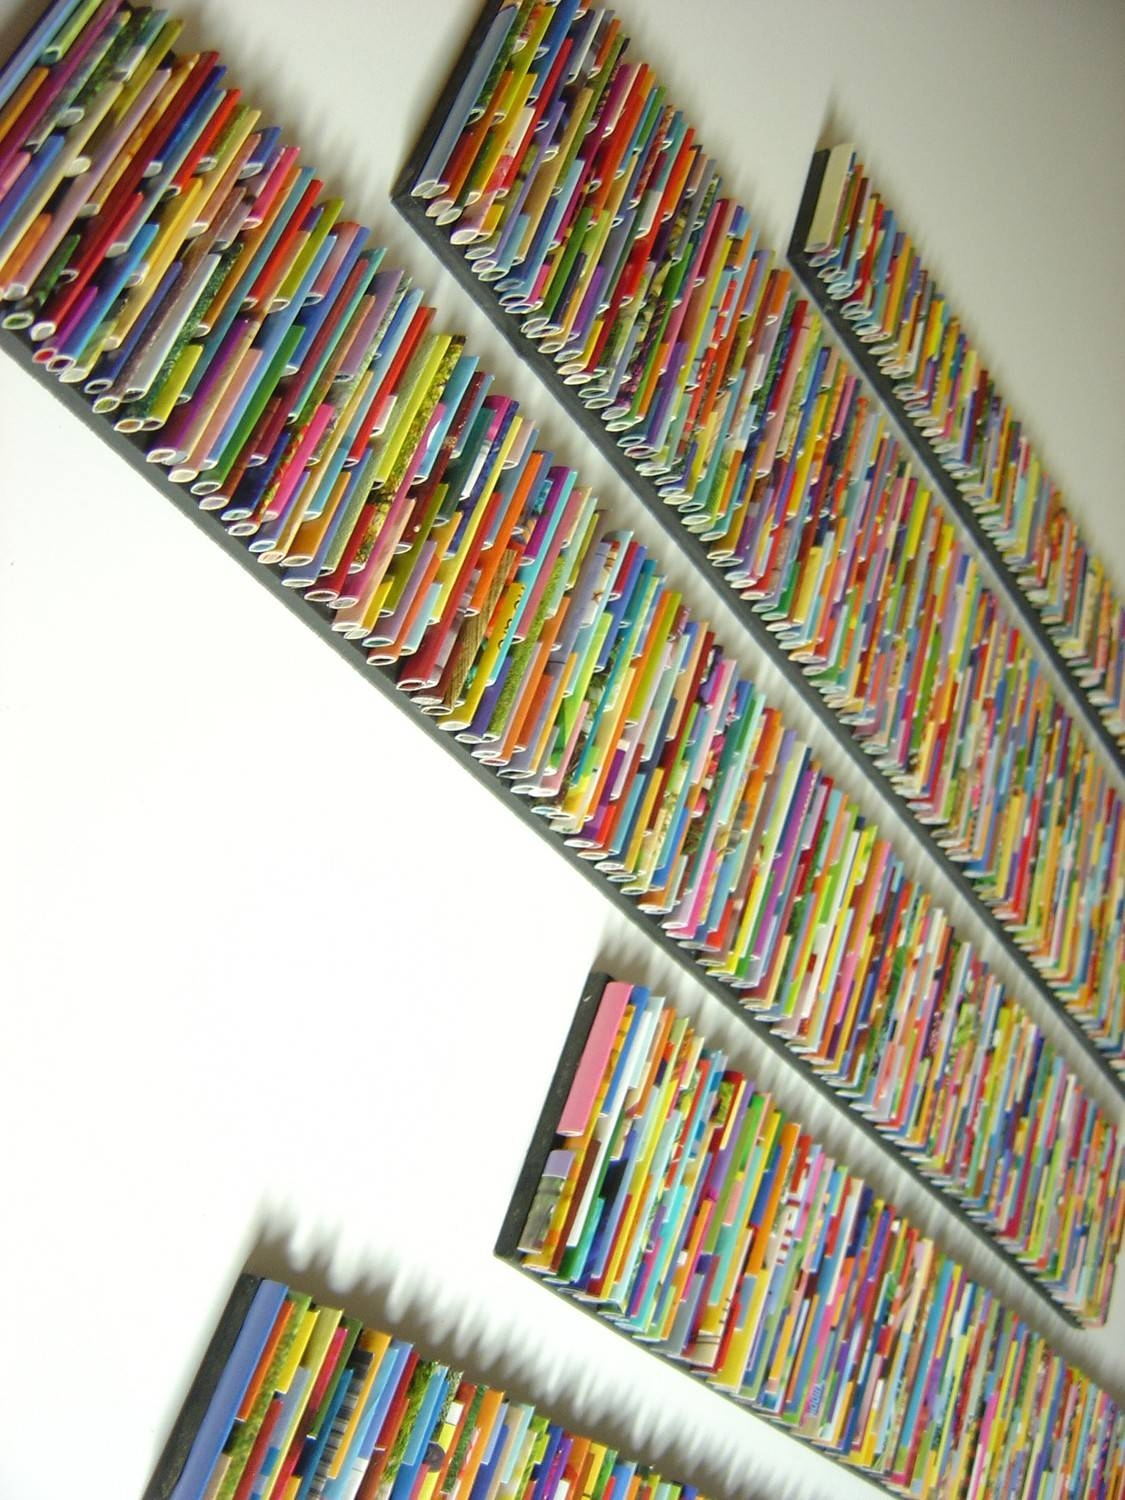 Barcode Wall Art Made From Recycled Magazines Colorful Art Pertaining To Most Recently Released Recycled Wall Art (View 3 of 30)